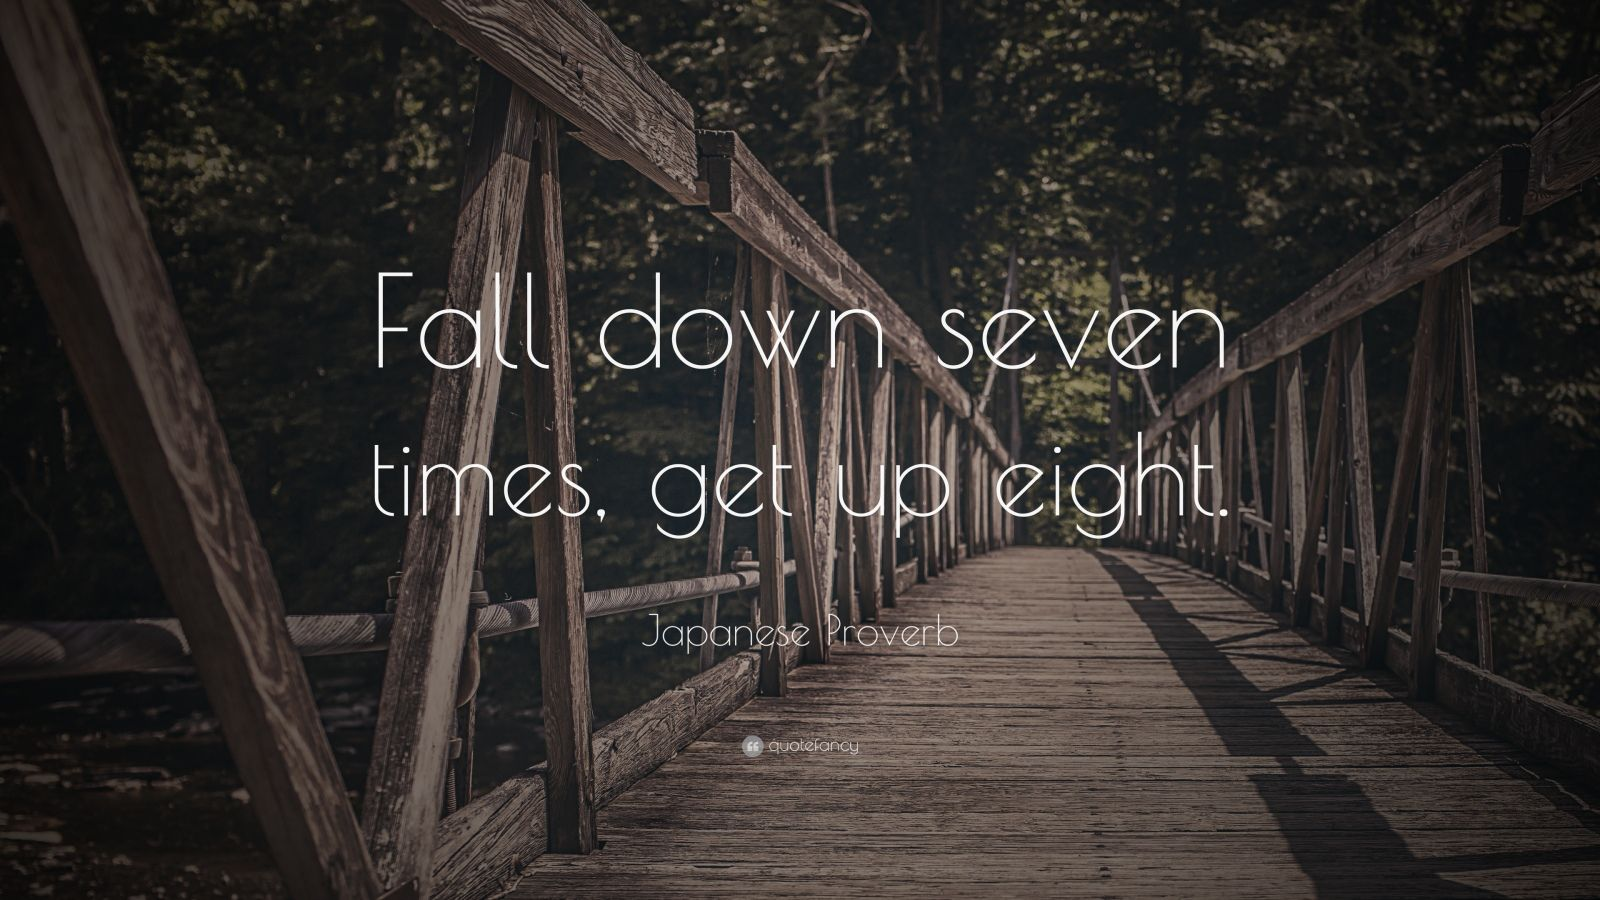 Elon Musk Quotes Wallpapers Japanese Proverb Quote Fall Down Seven Times Get Up